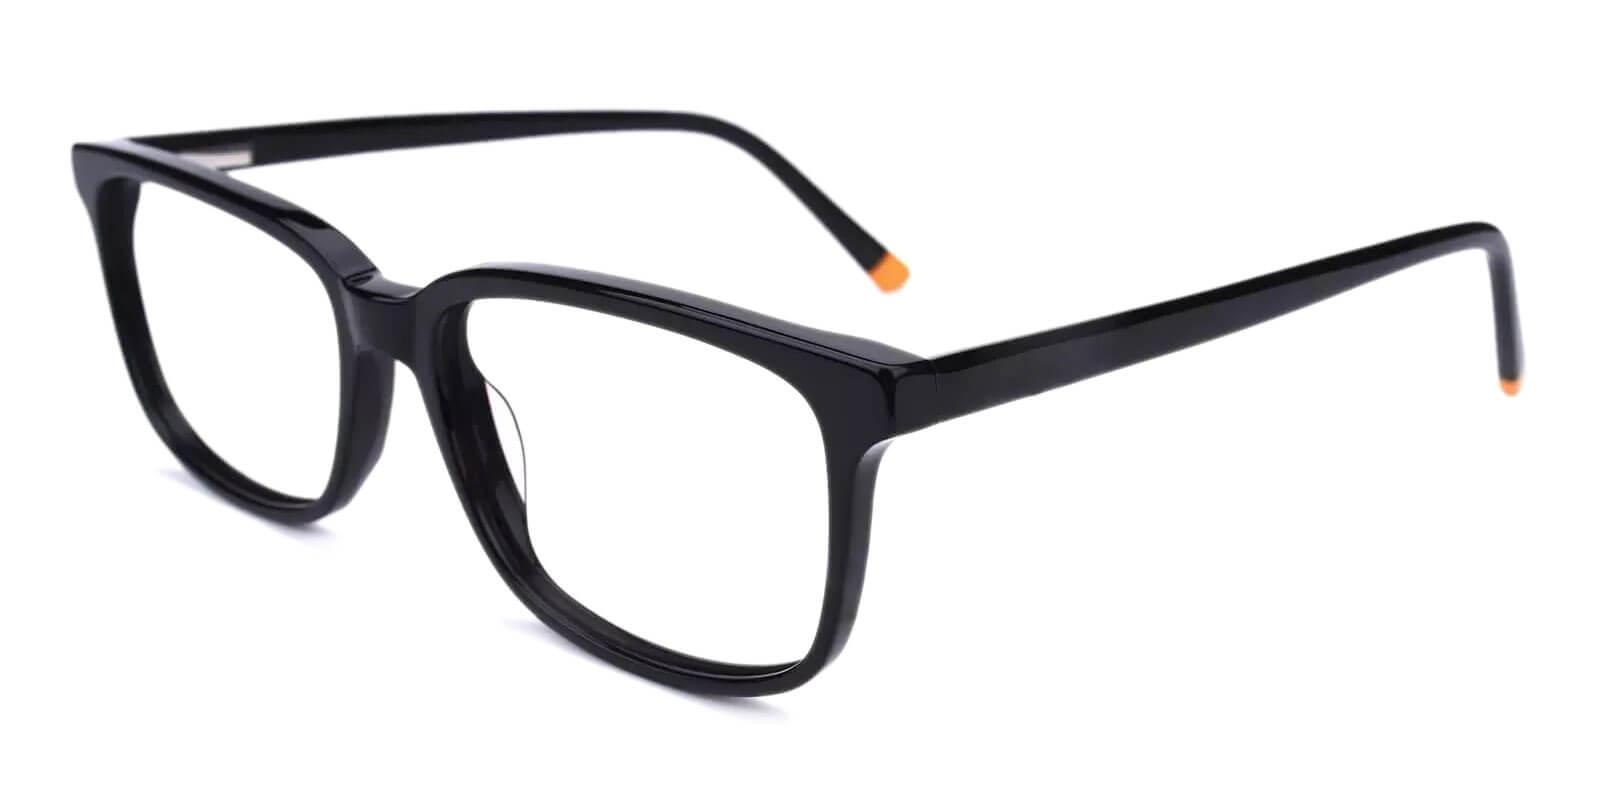 Leupp Corner Black Acetate Eyeglasses , SpringHinges , UniversalBridgeFit Frames from ABBE Glasses